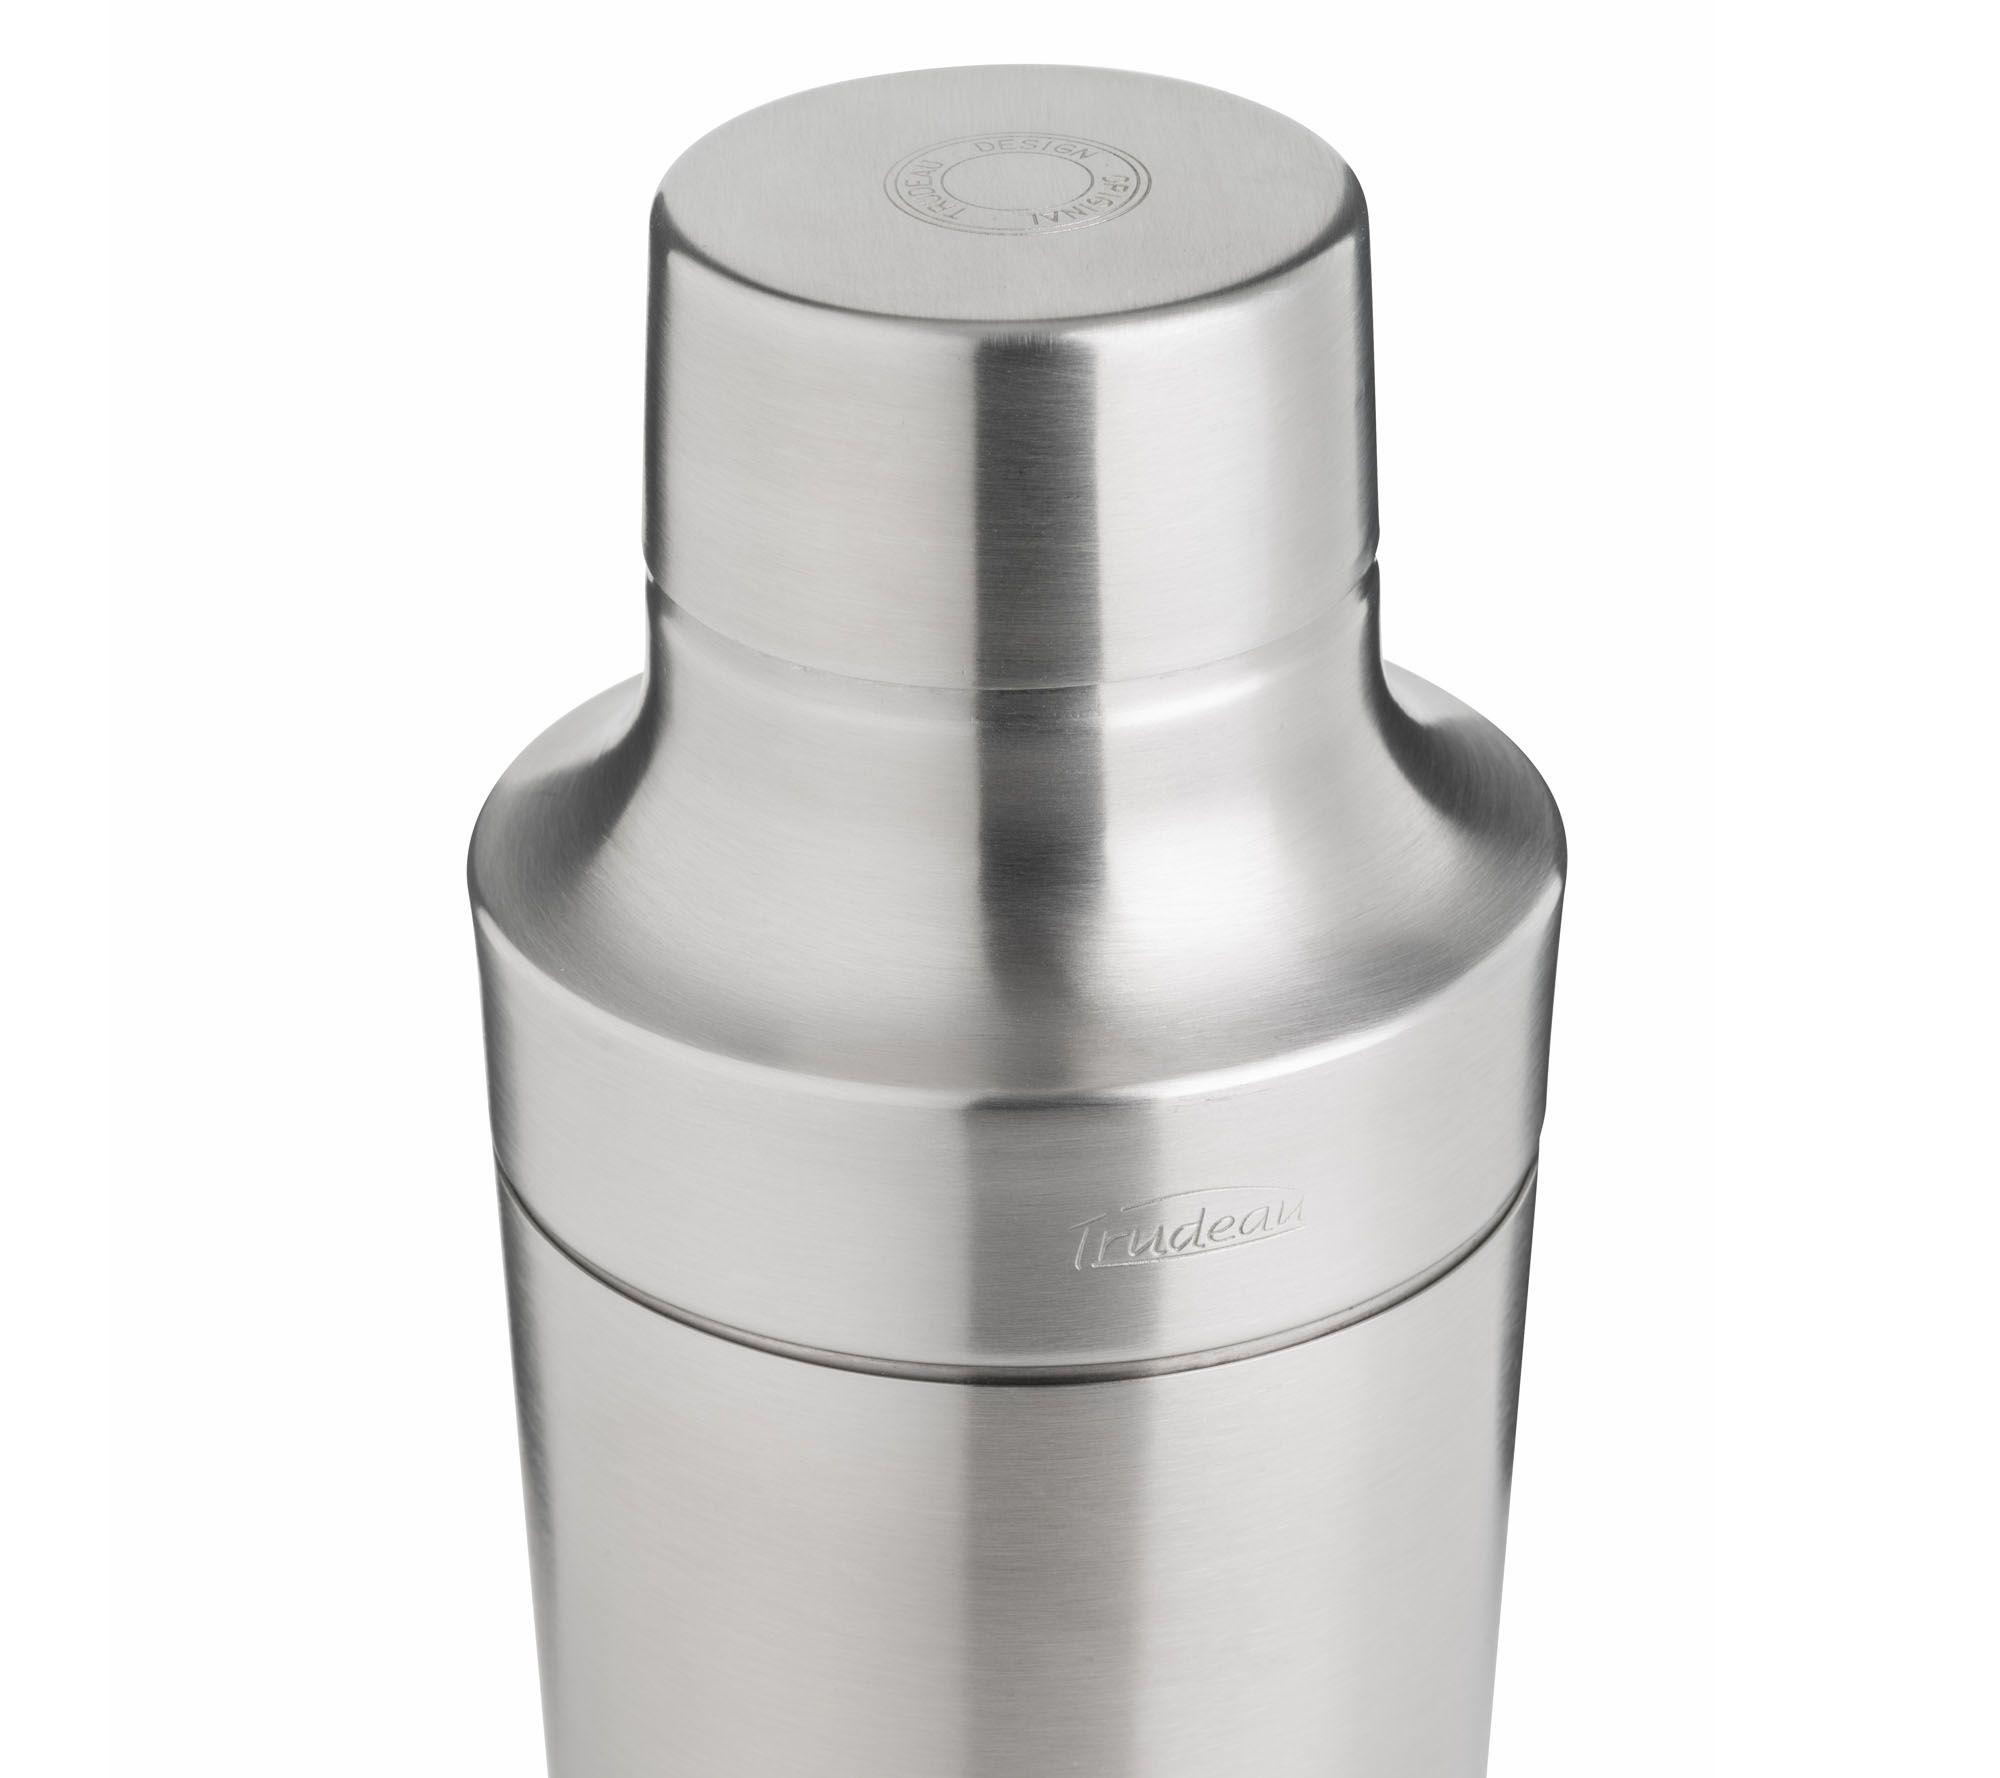 20 oz Stainless Steel Old Dutch Cocktail Shaker